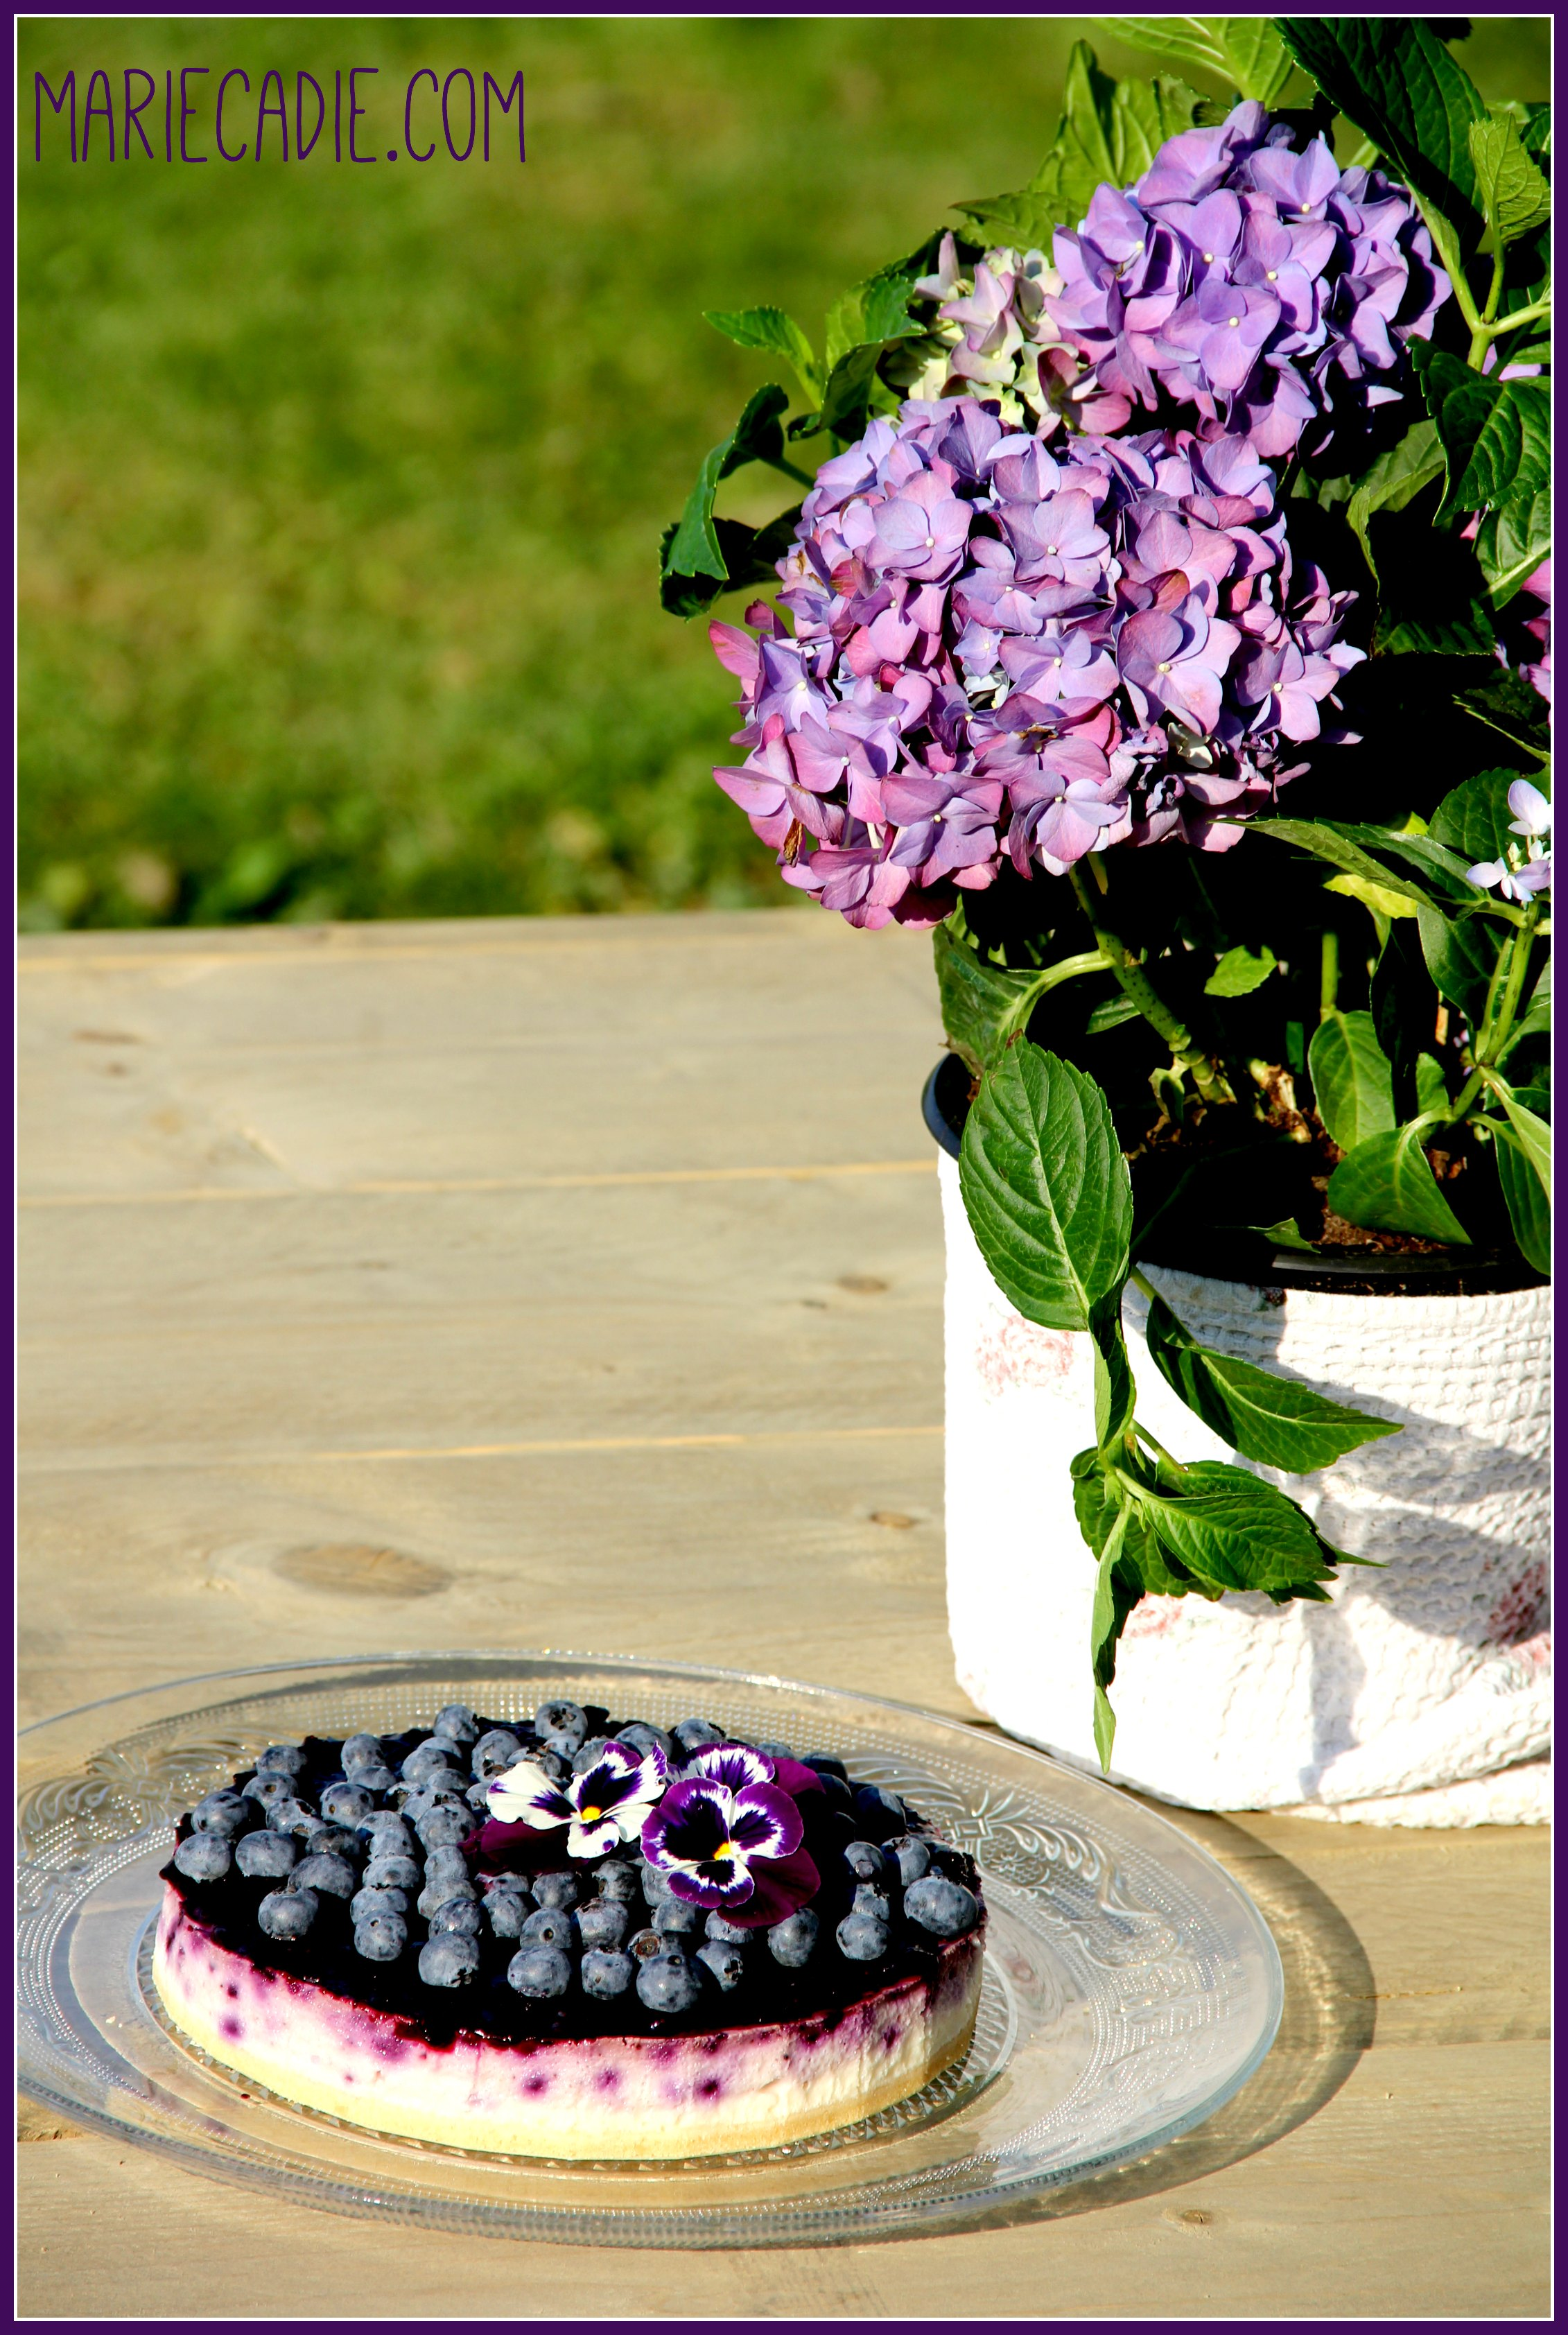 mariecadie-com-dr-oetker-blueberry-cheesecake_3